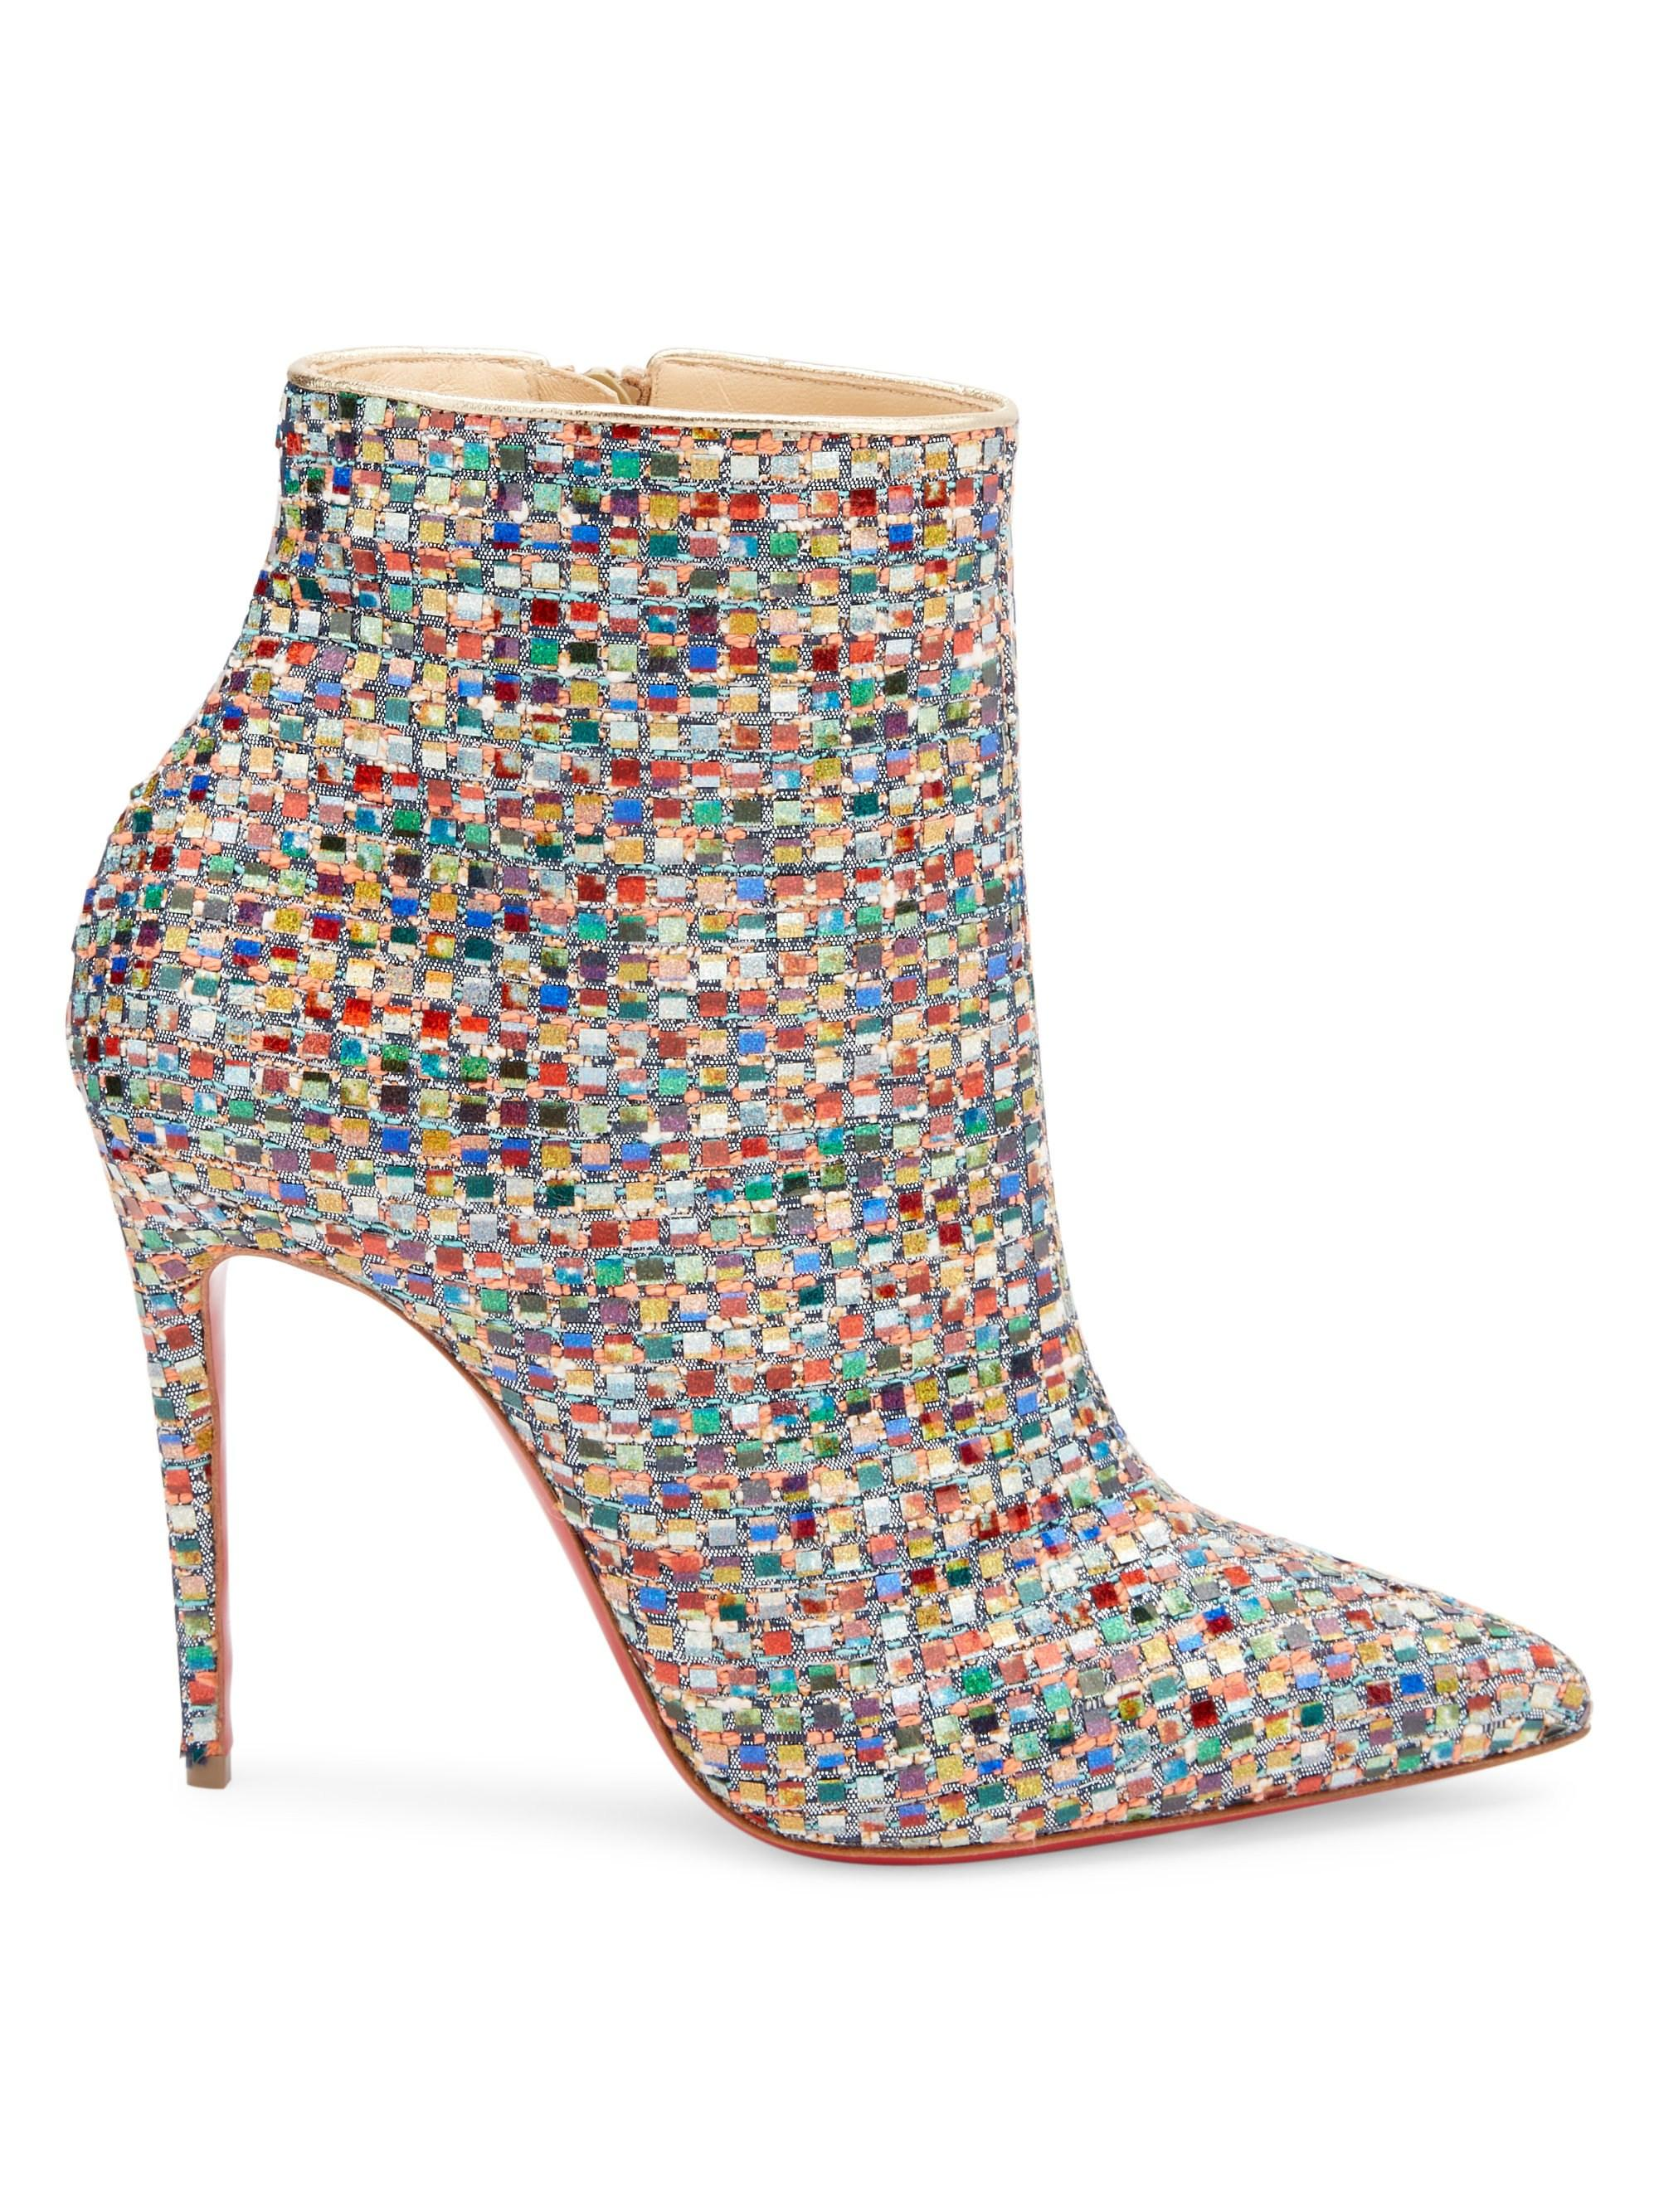 89f6195ef96 Christian Louboutin Multicolor Women's So Kate 100 Patchwork Point Toe  Booties